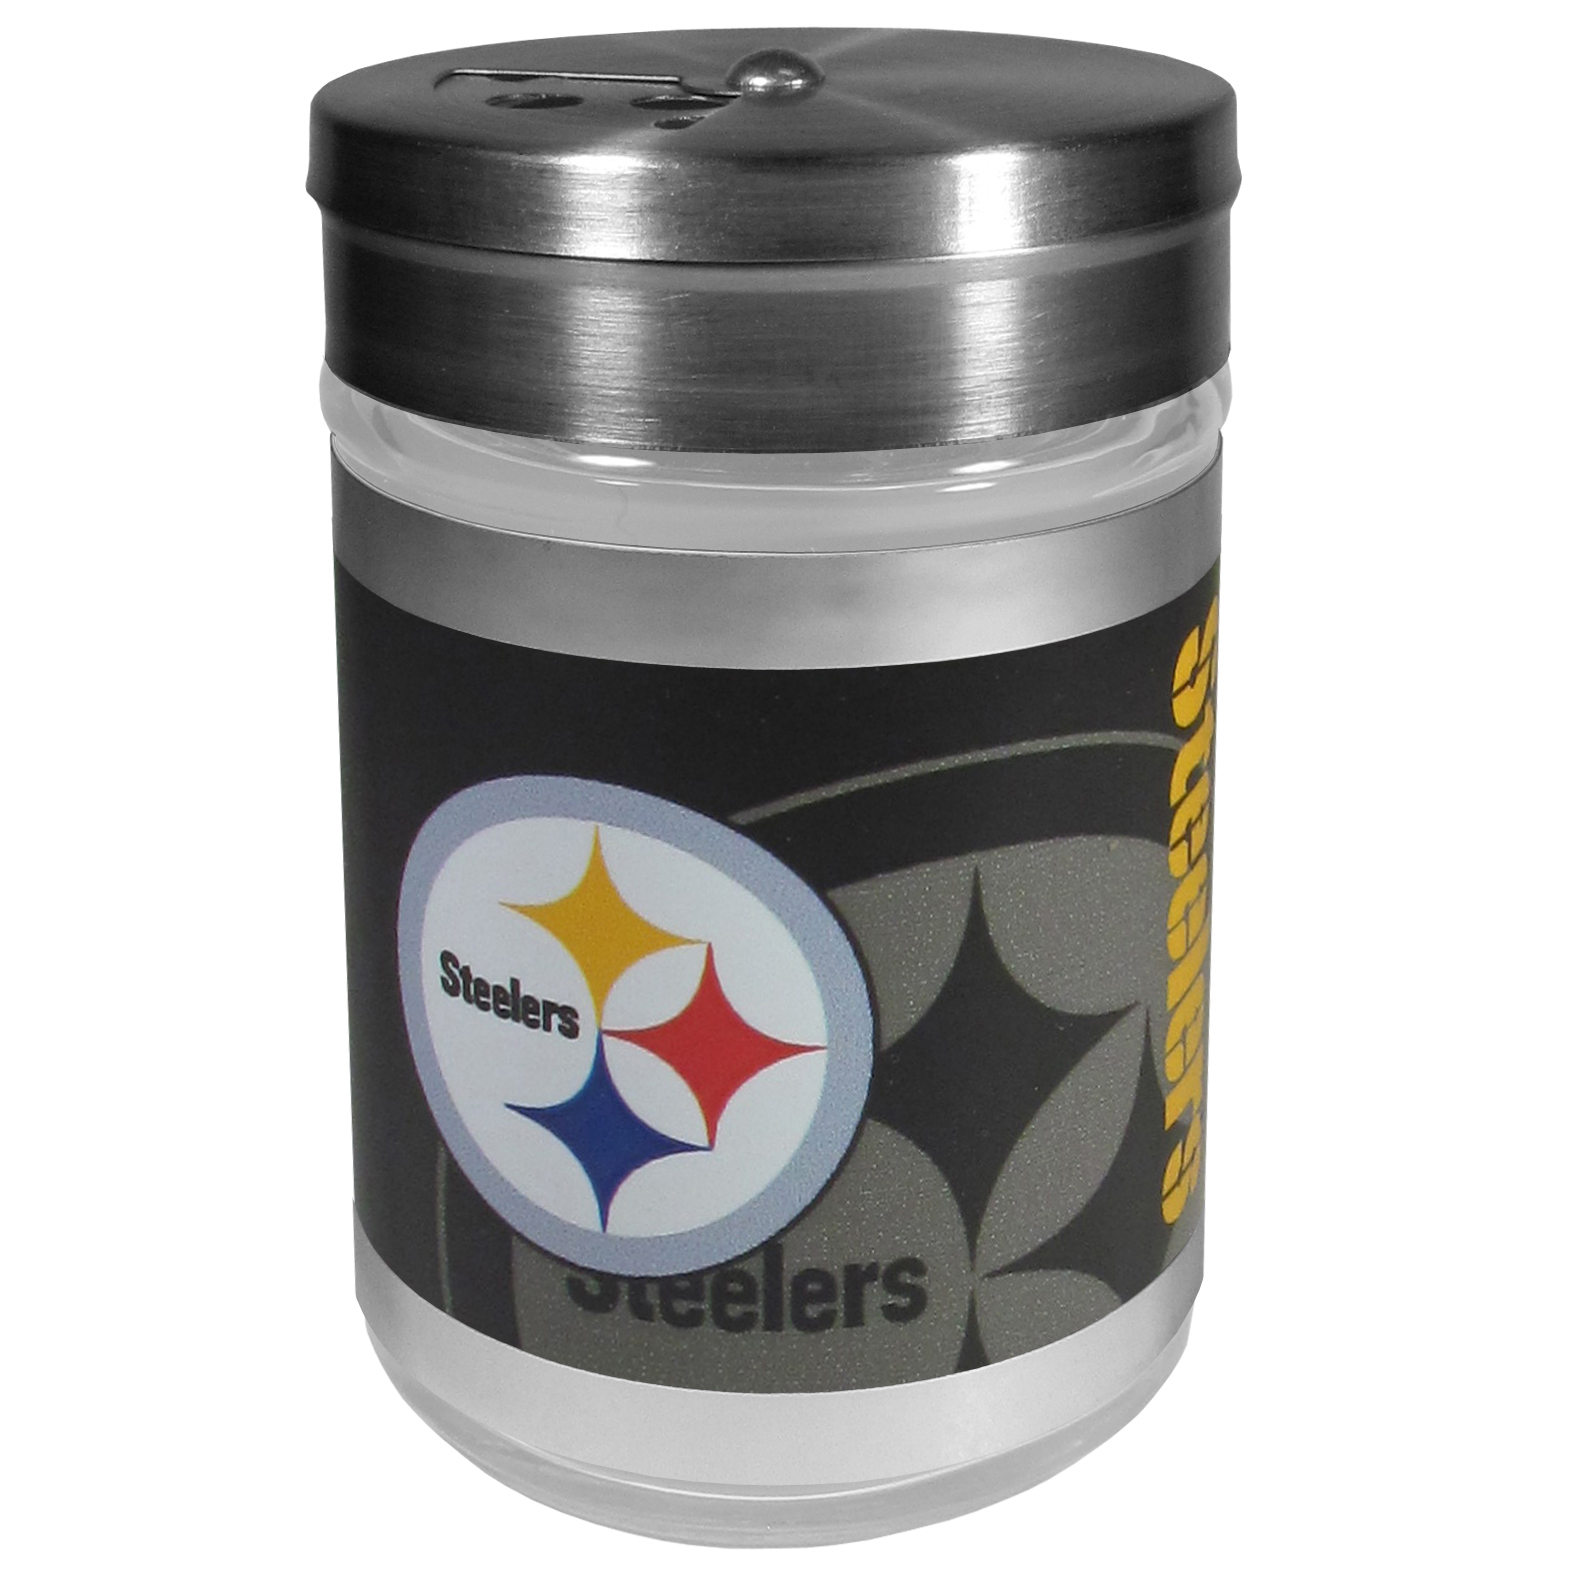 Pittsburgh Steelers Tailgater Season Shakers - Spice it up with our Pittsburgh Steelers tailgater season shakers! This compact shaker is 2 inch tall with a twist top that closes off the holes at the top making it perfect for travel preventing those messy spills. The shaker has wide holes perfect for keeping your pepper seeds or cheese toppings. The bright team graphics will make you the envy of the other fans while you are grilling up your tailgating goodies.